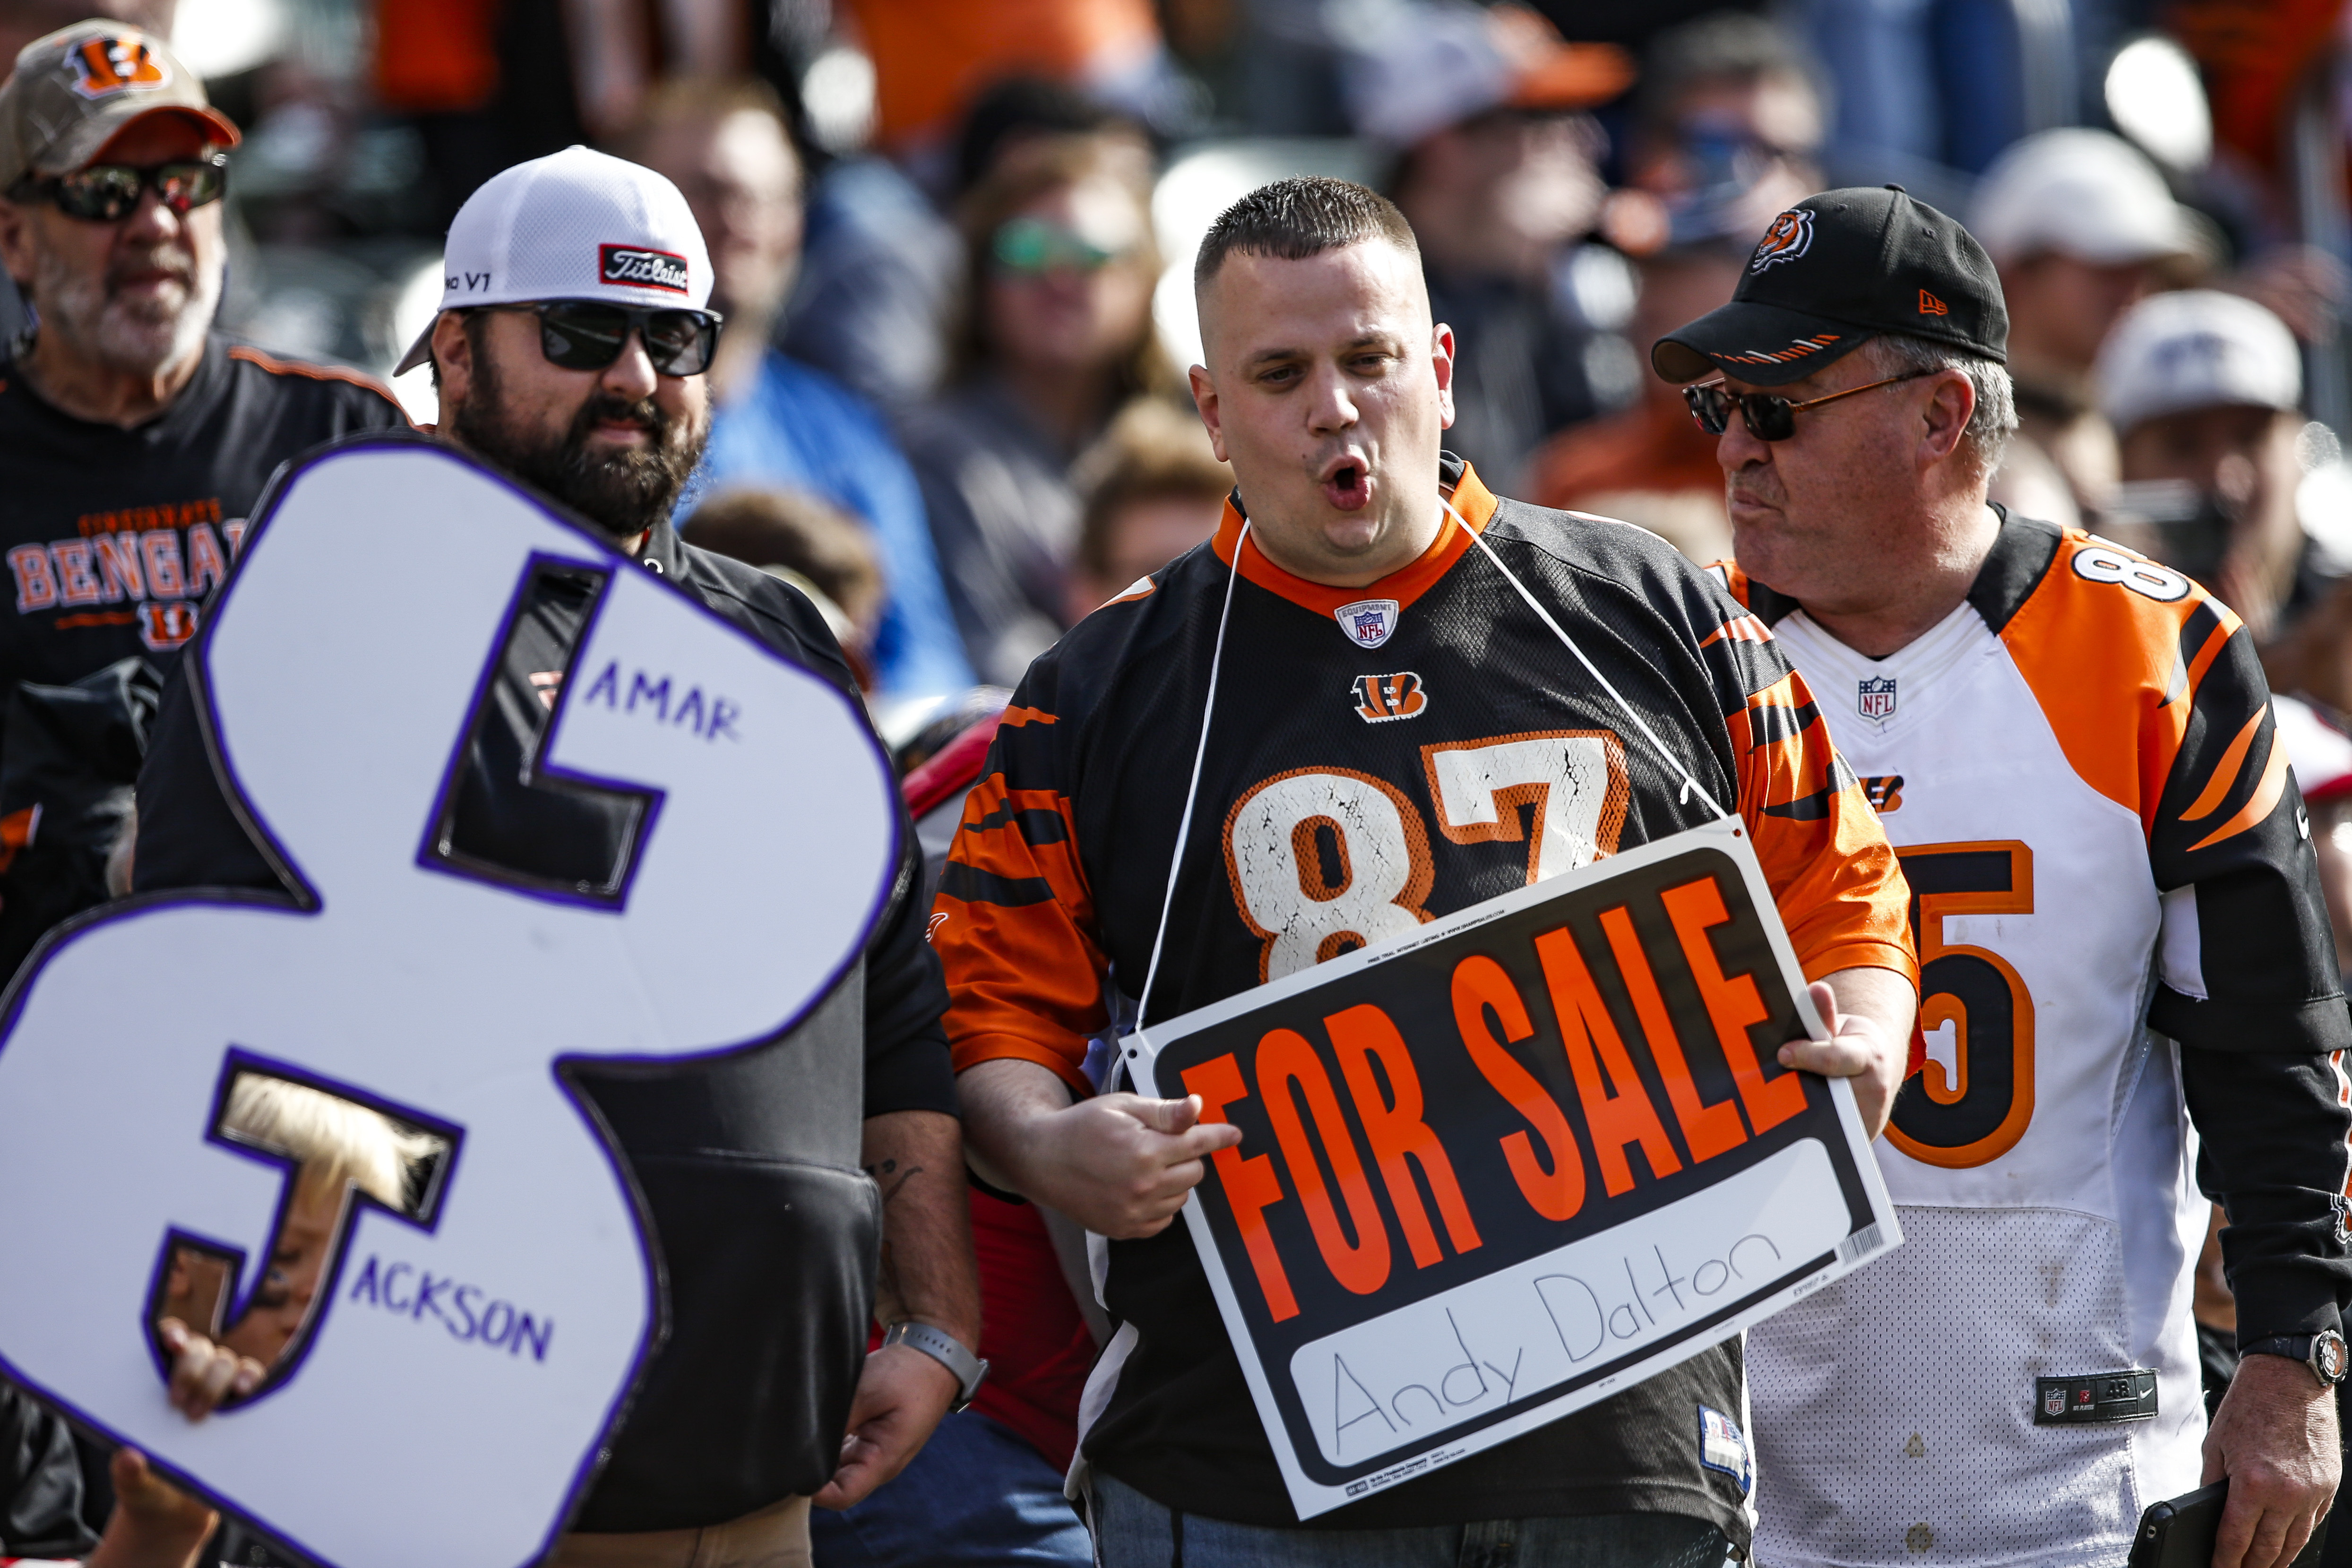 Finley struggles in debut, Bengals remain only winless team